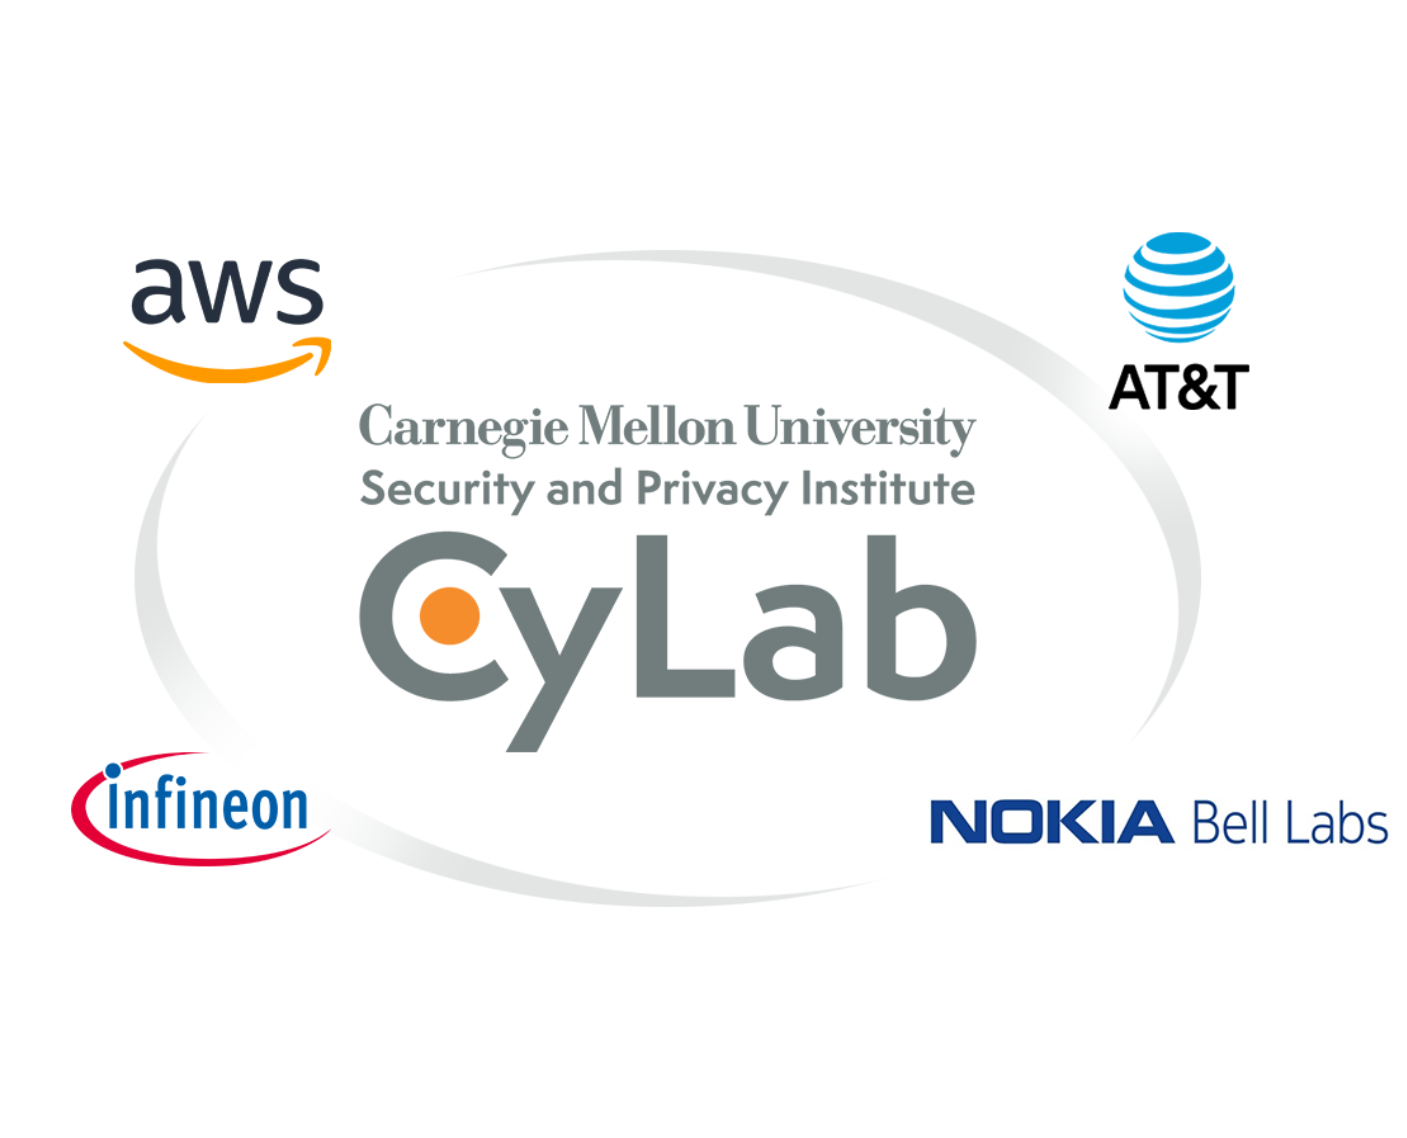 Cylab logo as well as amazon, AT&T, infineon, and Nokia Bell Labs logos